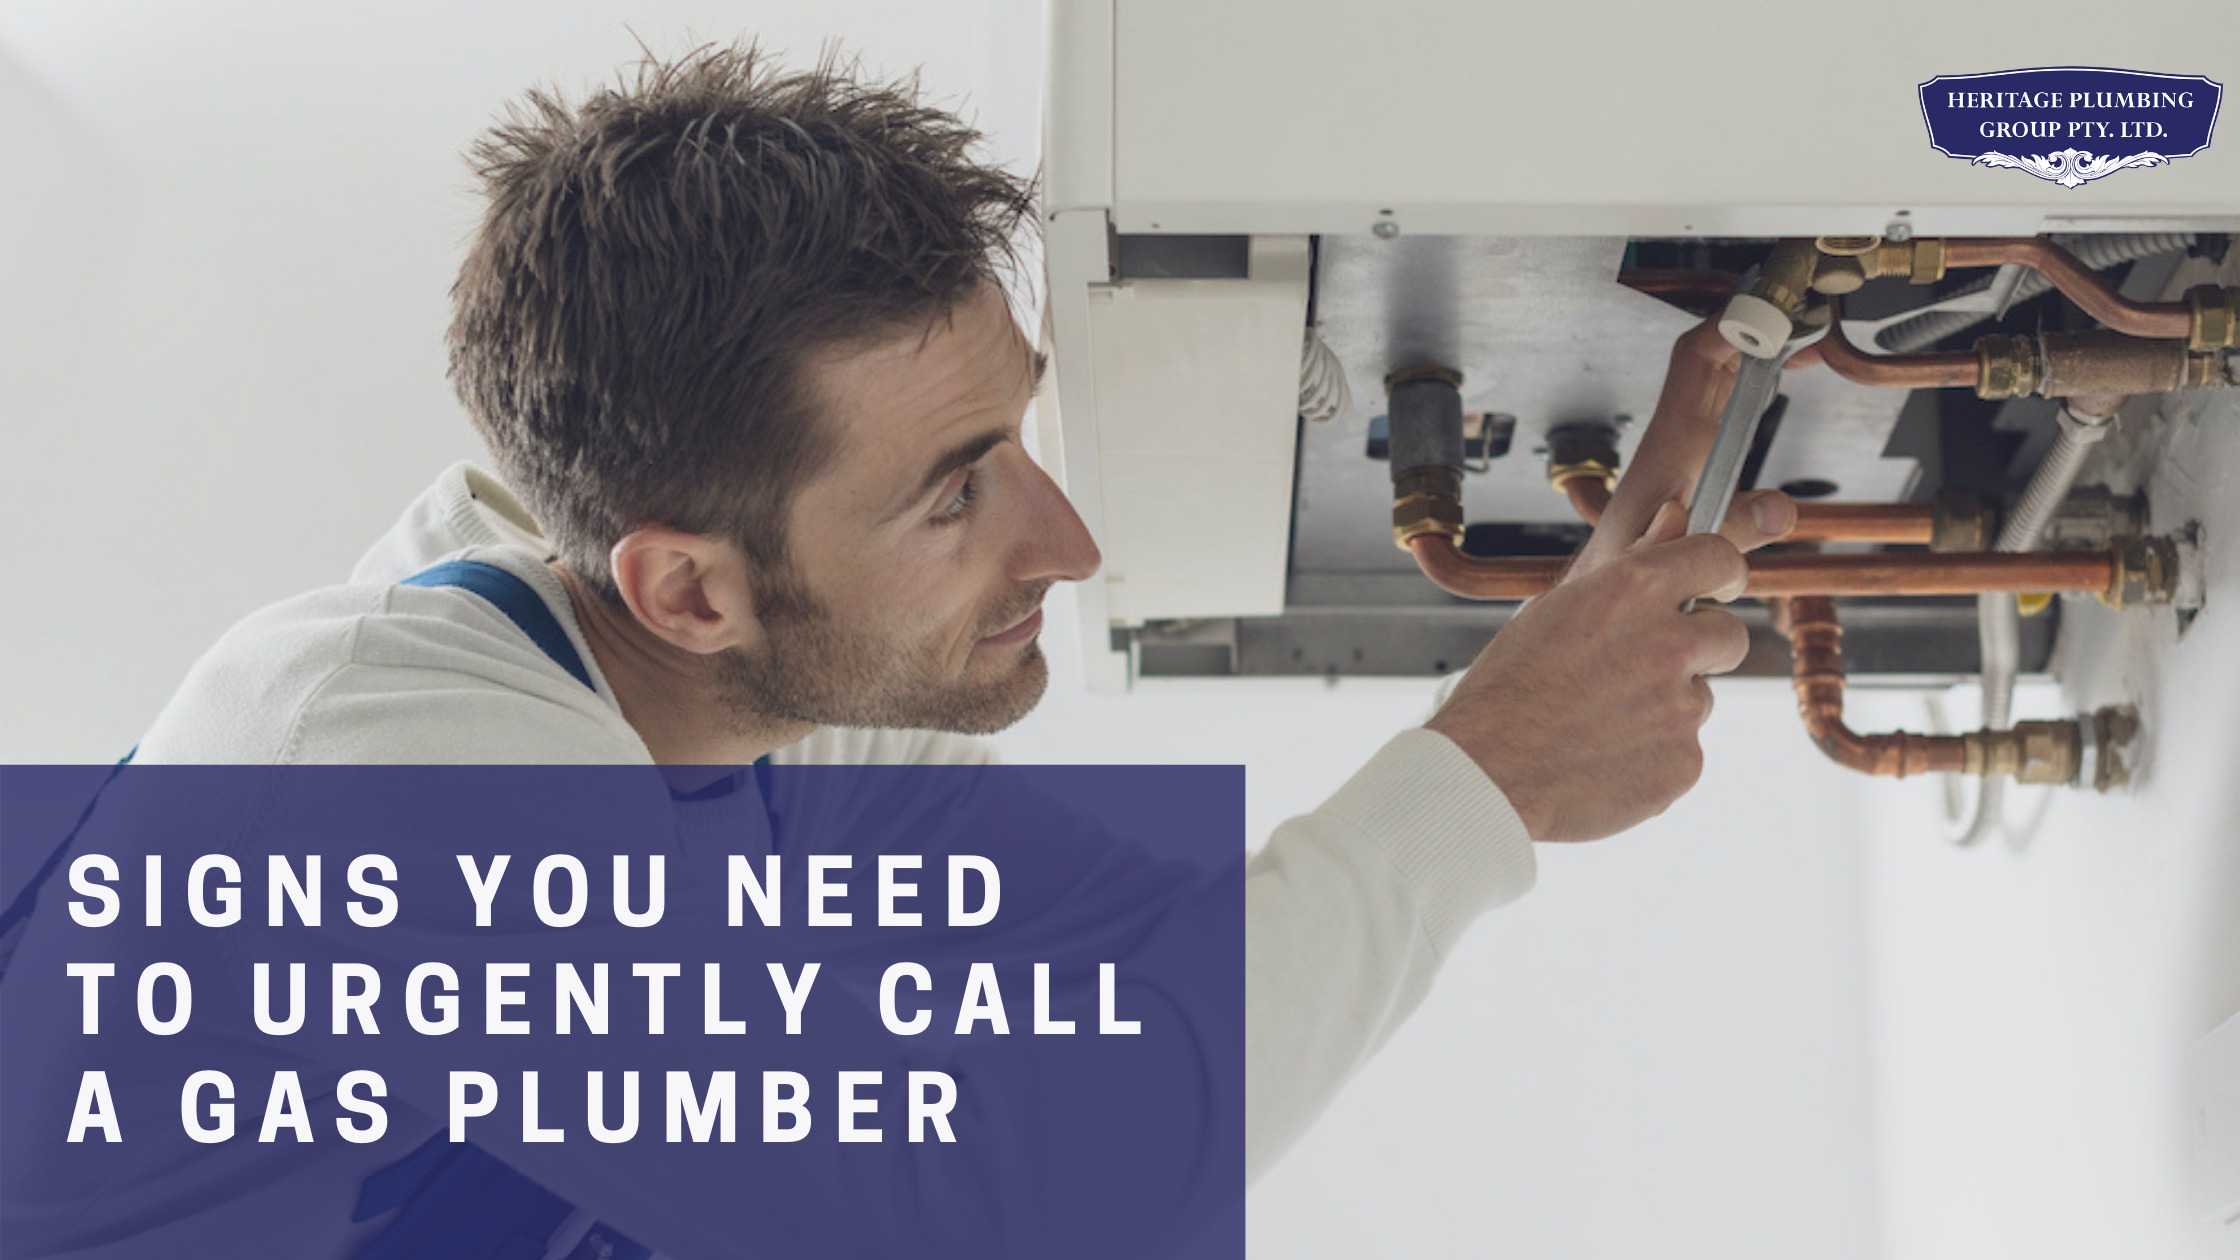 Signs You Need To Urgently Call a Gas Plumber